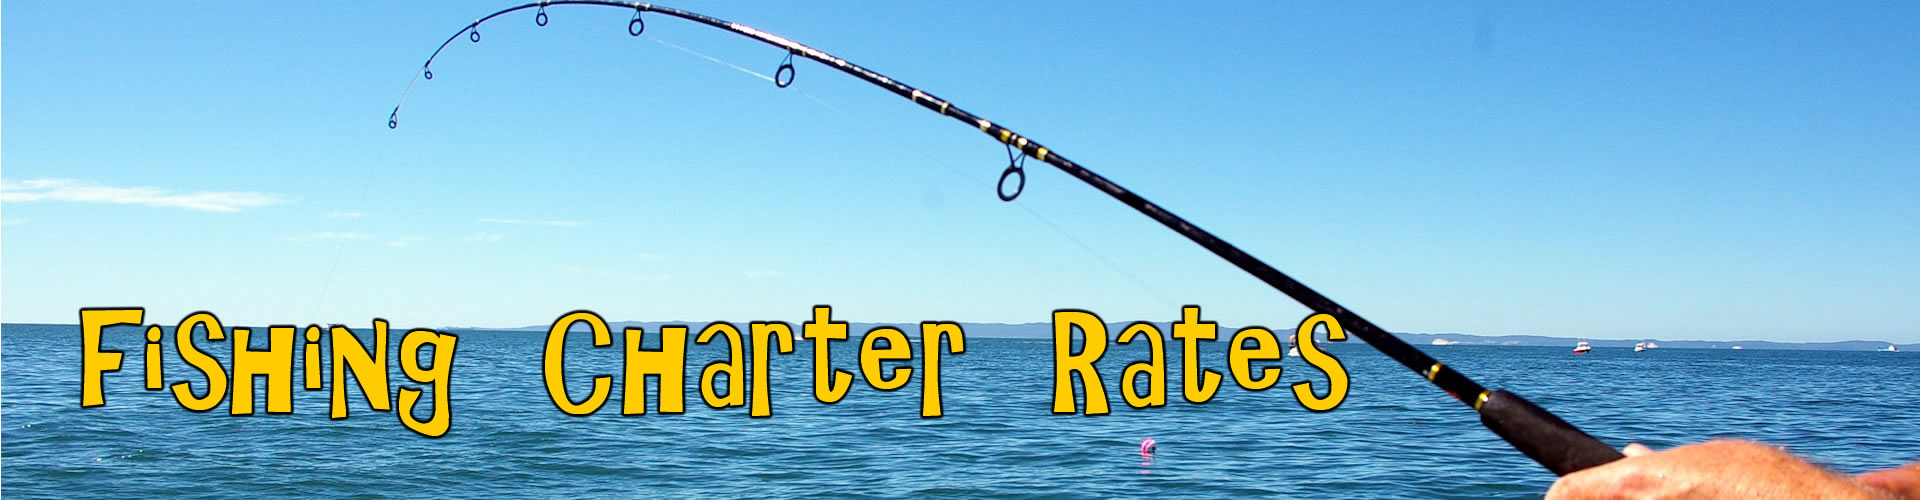 fishing Charter Rates, Tampa